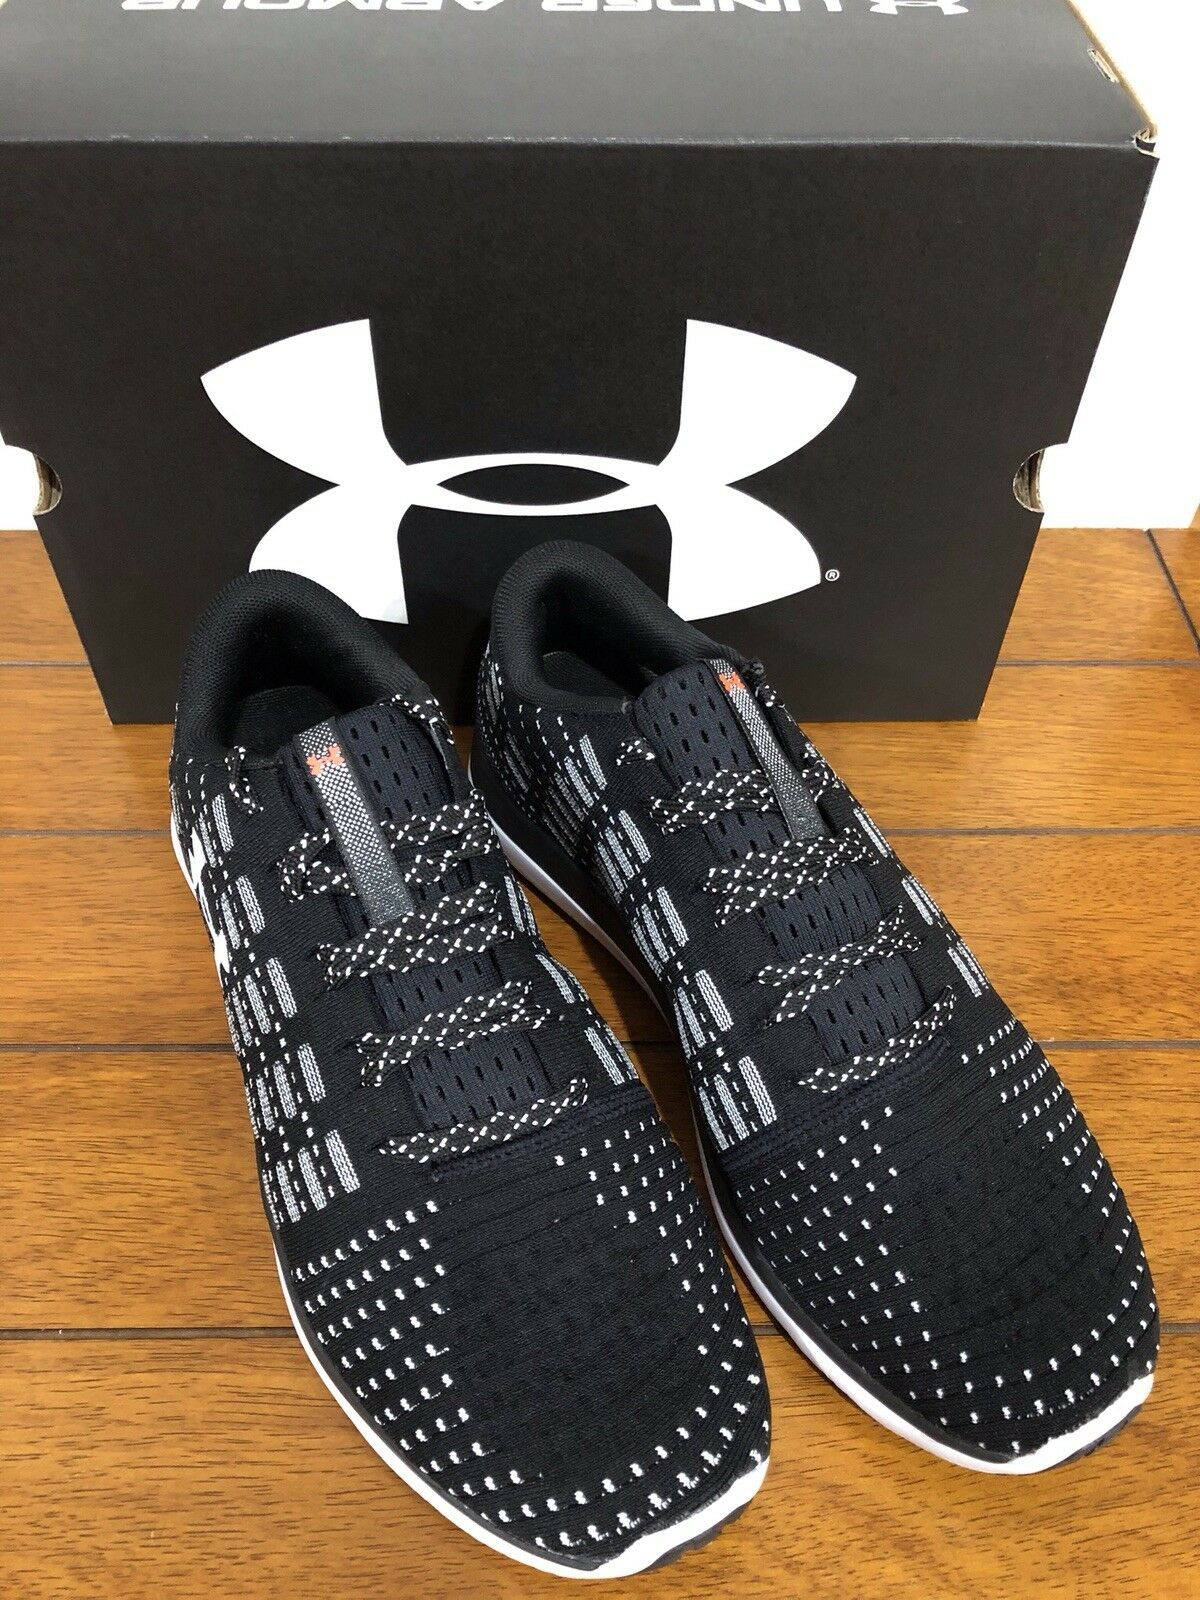 Under Armour Threadborne Slingflex Speckle scarpe scarpe scarpe nero  bianca Uomo Dimensione 9. 9ad196